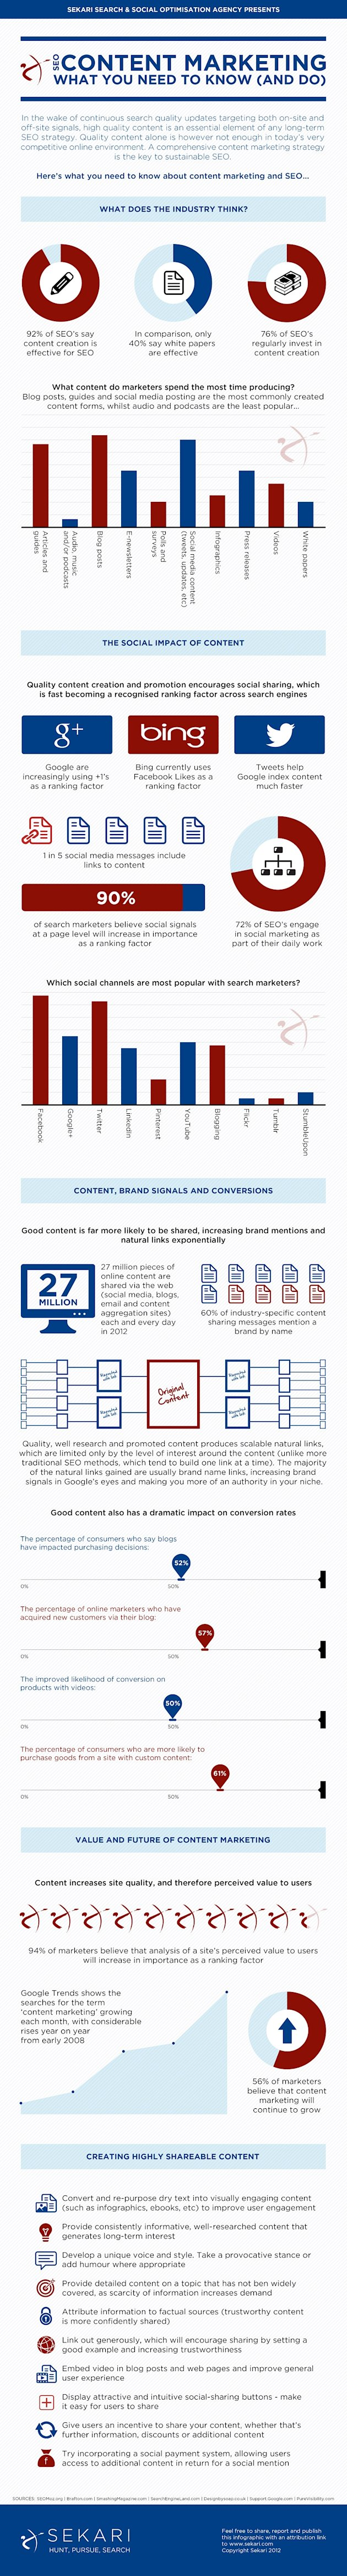 Content Marketing For SEO [Infographic] image content marketing for seo what you need to know